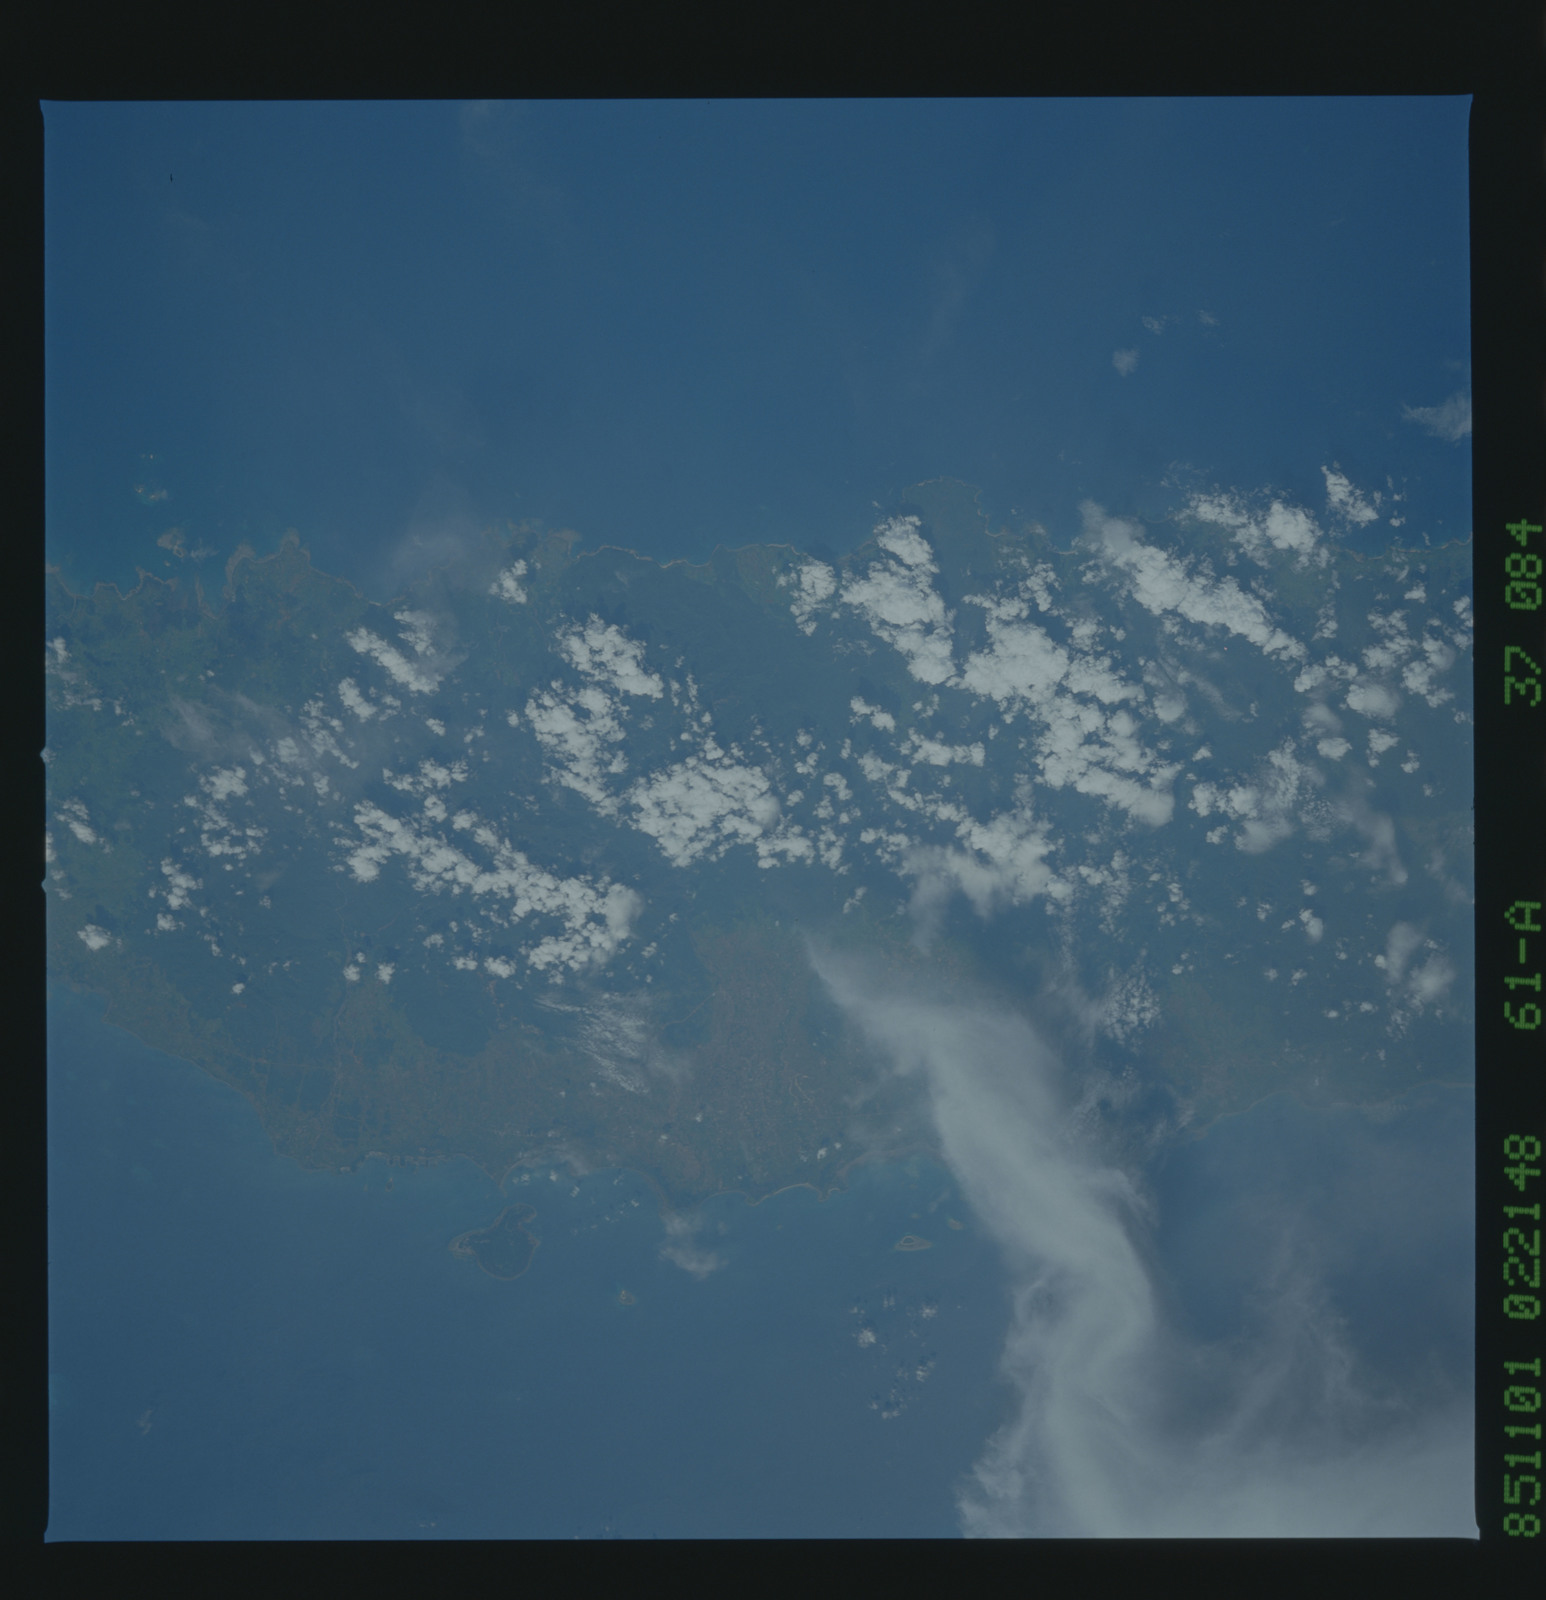 61A-37-084 - STS-61A - STS-61A earth observations